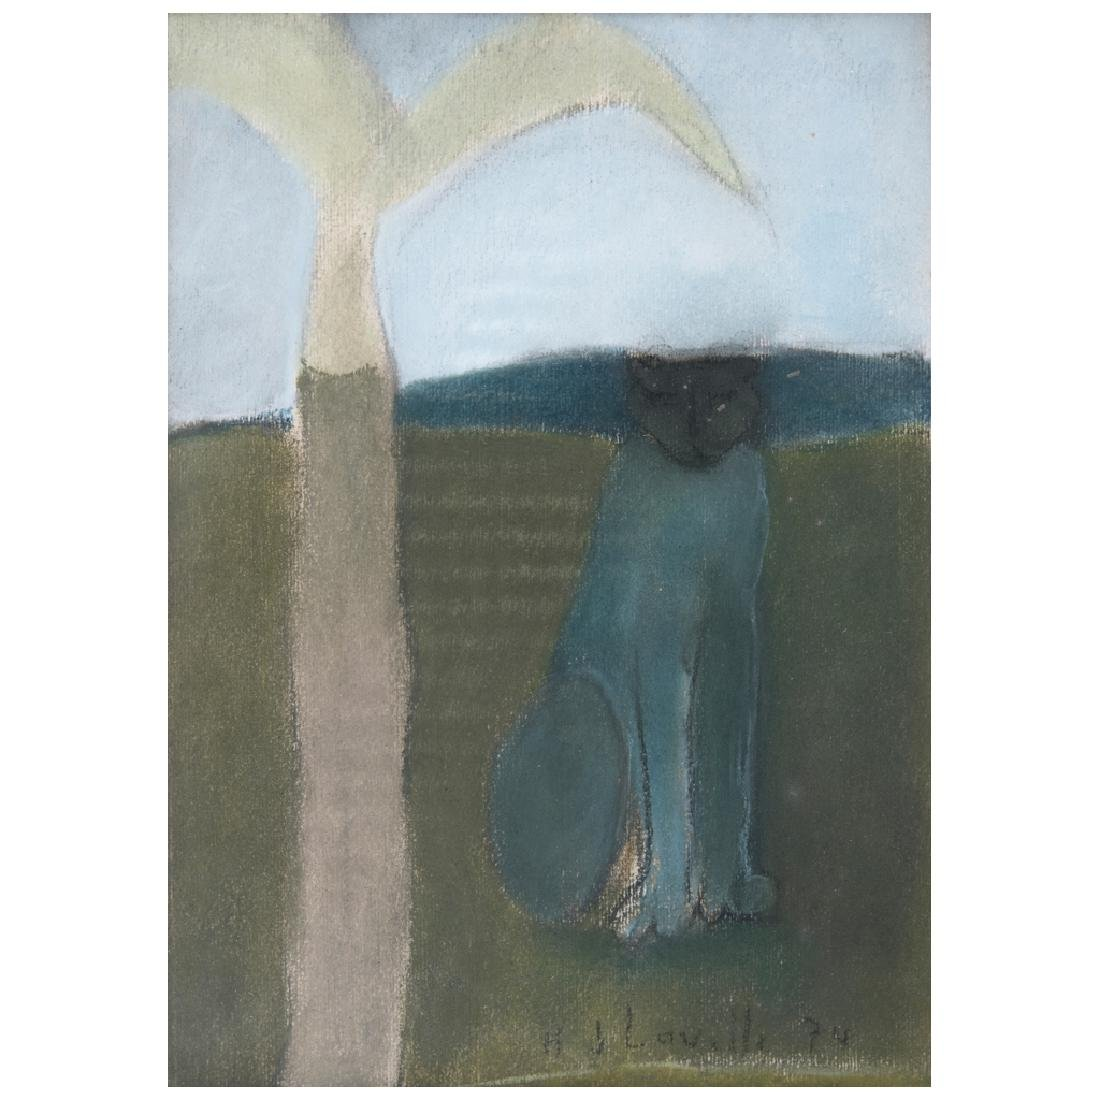 JOY LAVILLE, Untitled, Signed and dated 74, Pastel on